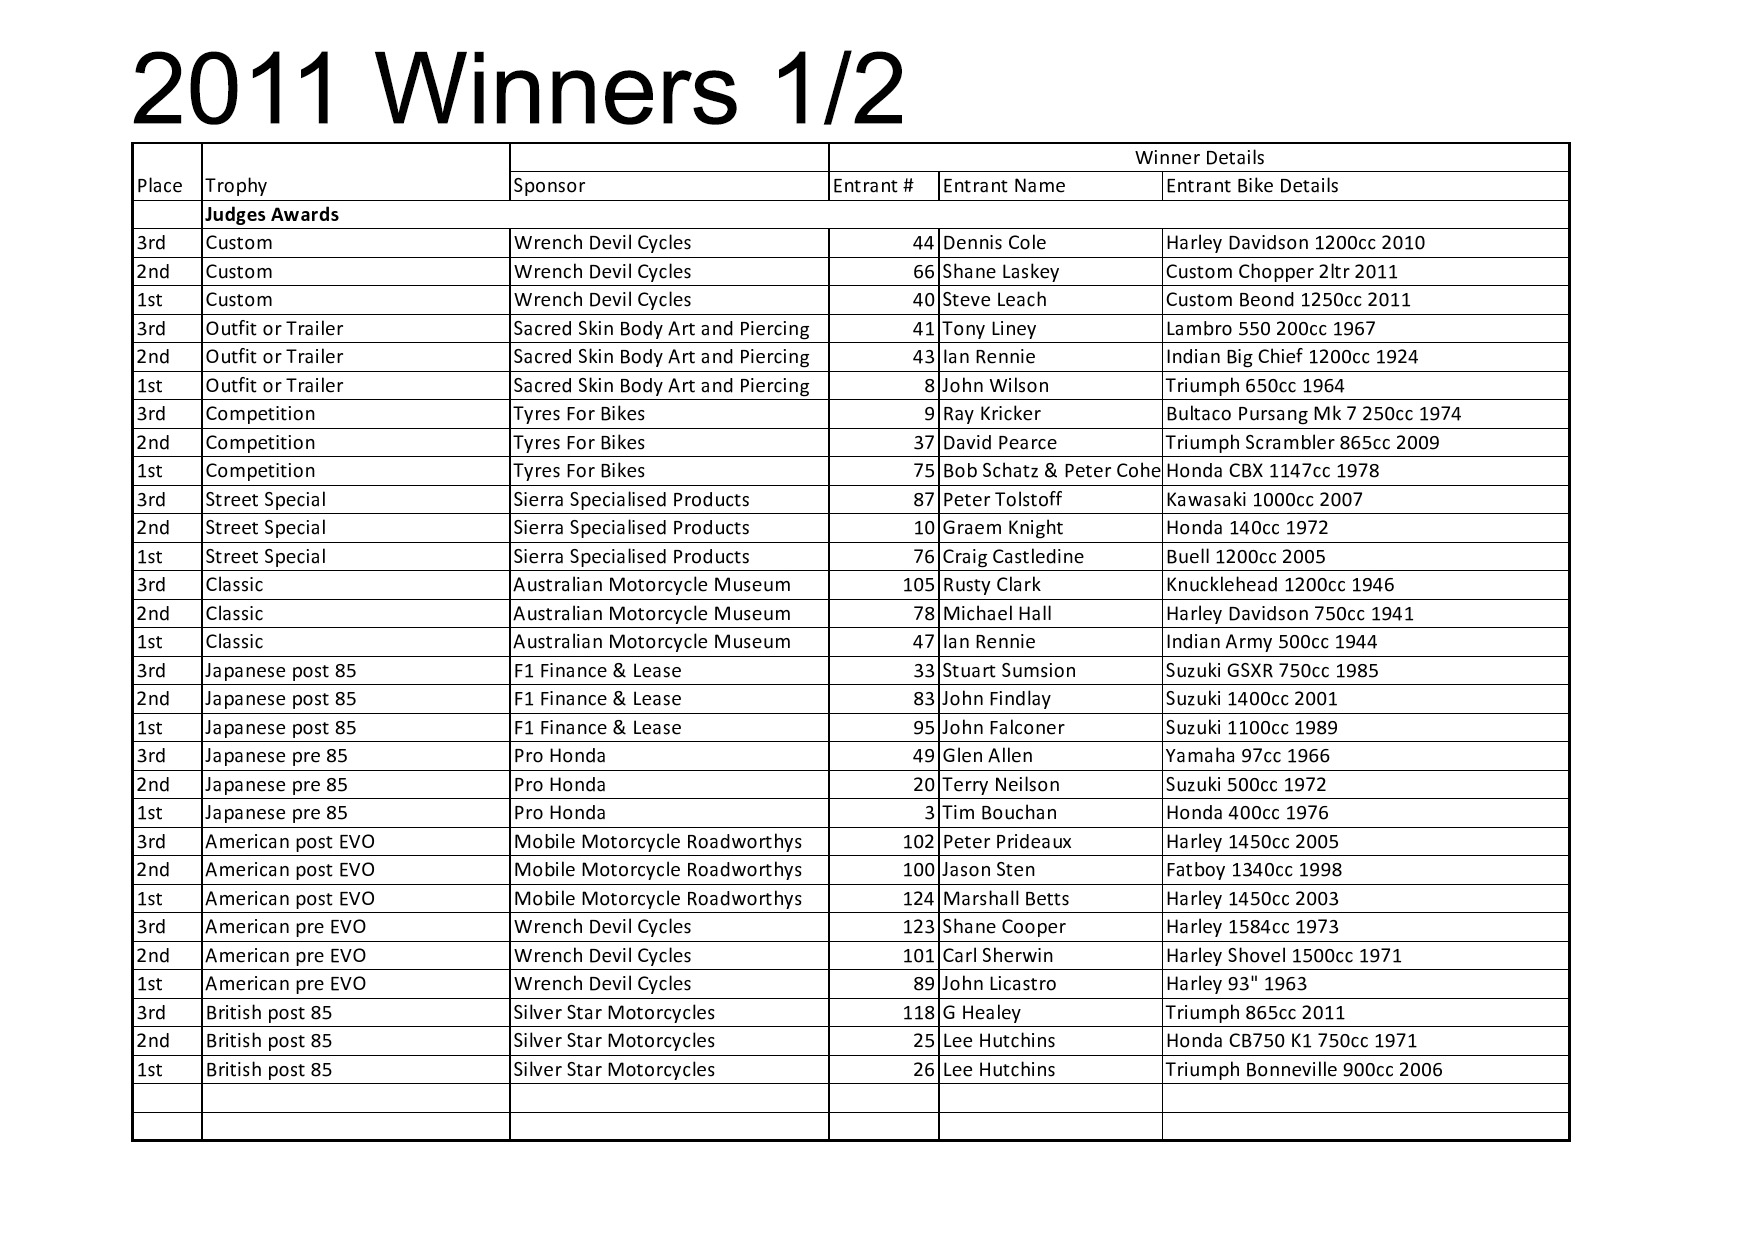 2011-Concours-Winners-1